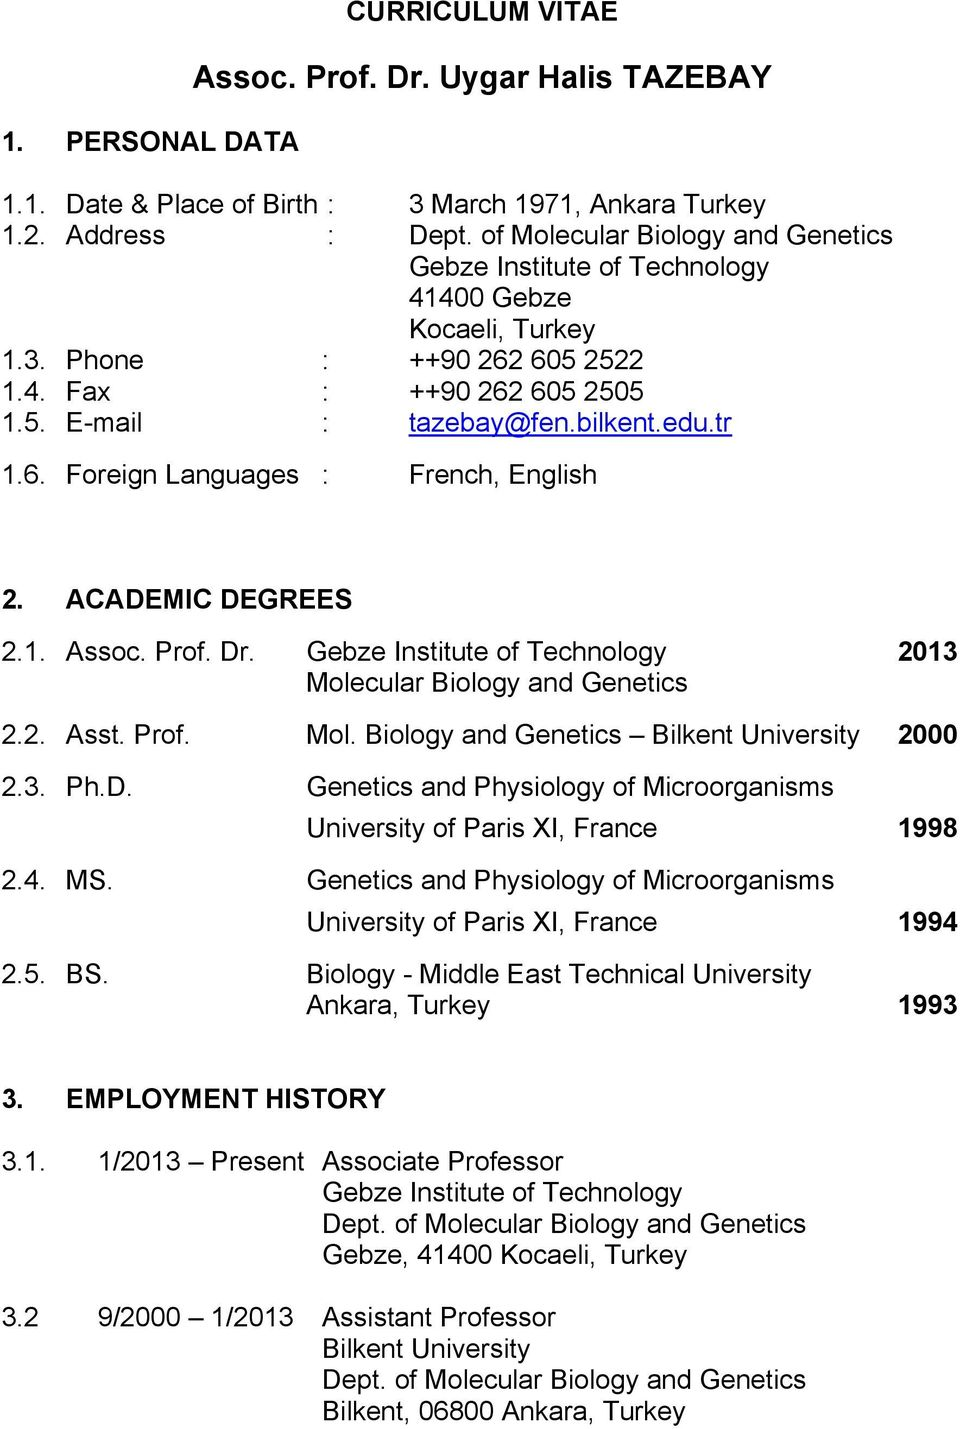 ACADEMIC DEGREES 2.1. Assoc. Prof. Dr. Gebze Institute of Technology 2013 Molecular Biology and Genetics 2.2. Asst. Prof. Mol. Biology and Genetics Bilkent University 2000 2.3. Ph.D. Genetics and Physiology of Microorganisms University of Paris XI, France 1998 2.